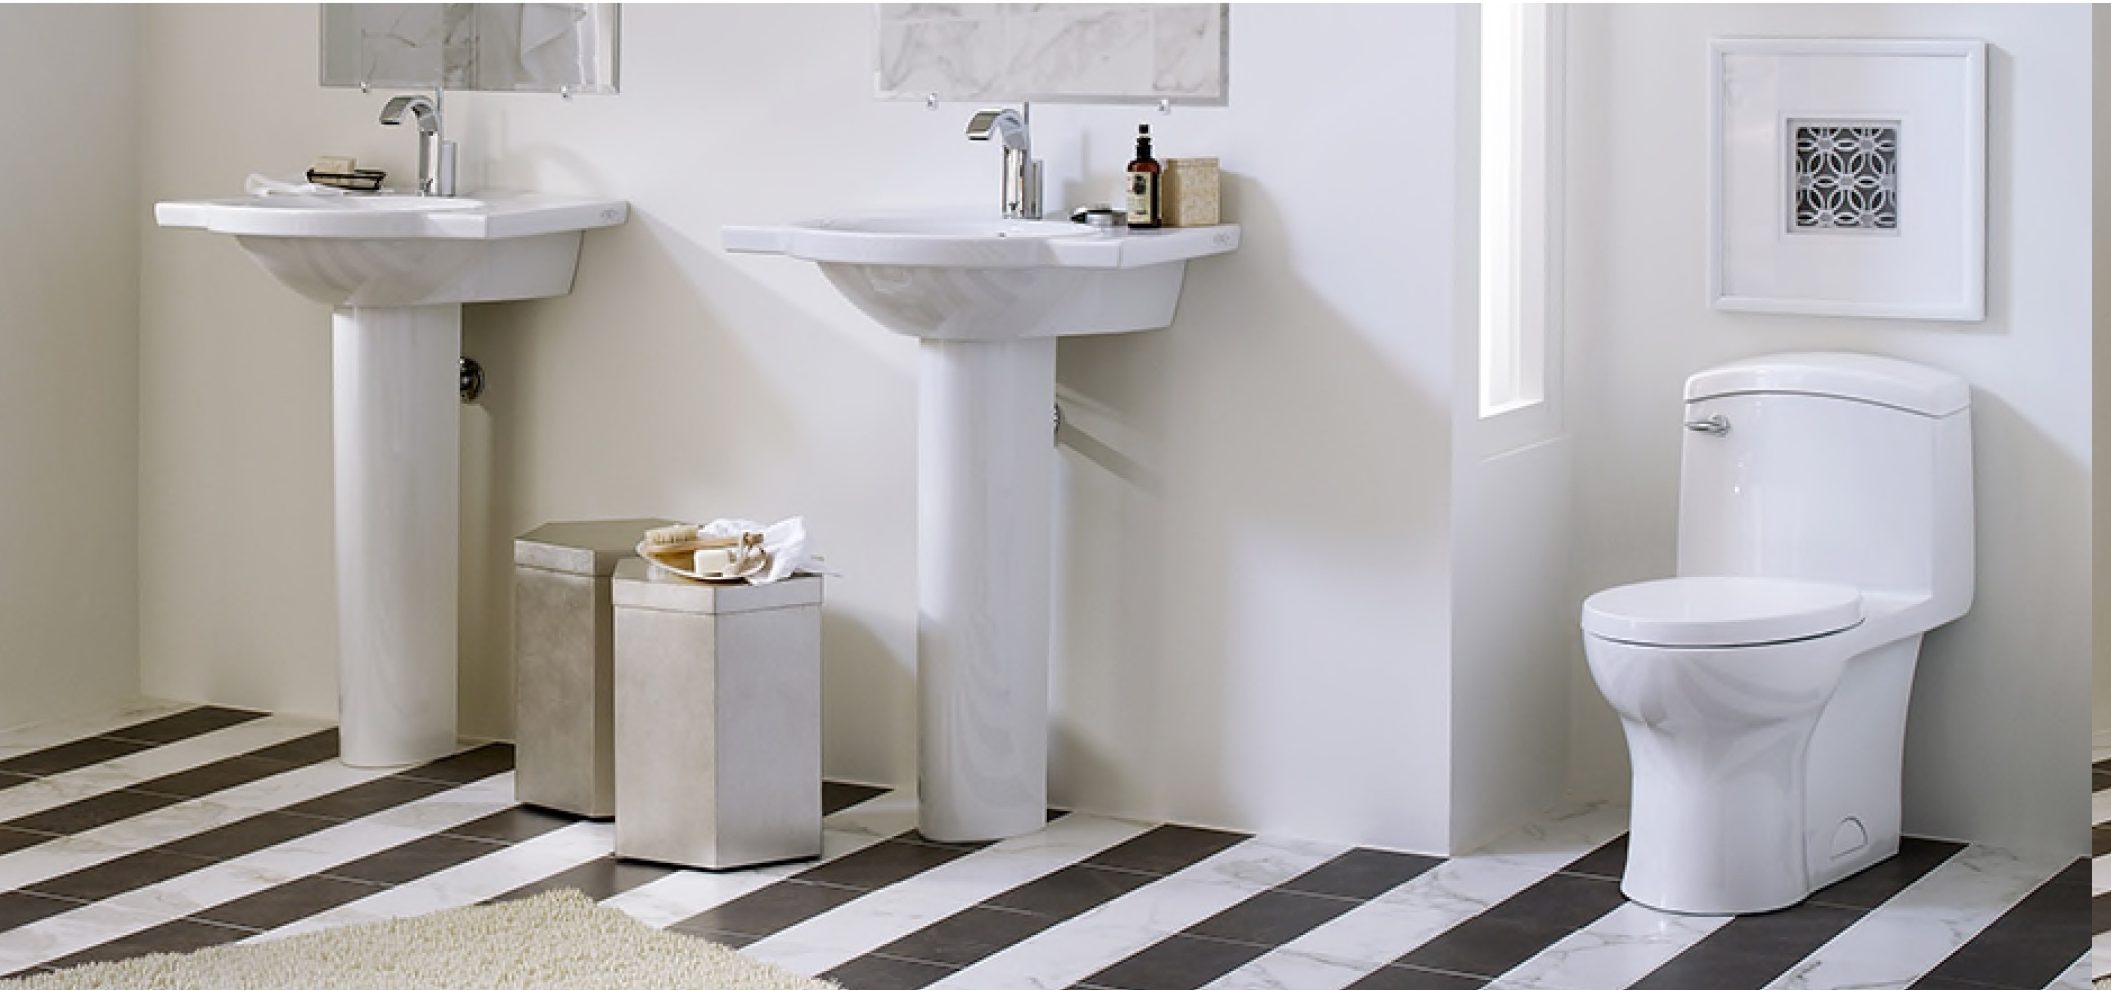 Image from the American Standard catalog promoting its Roycroft Collection of toilet, sinks.